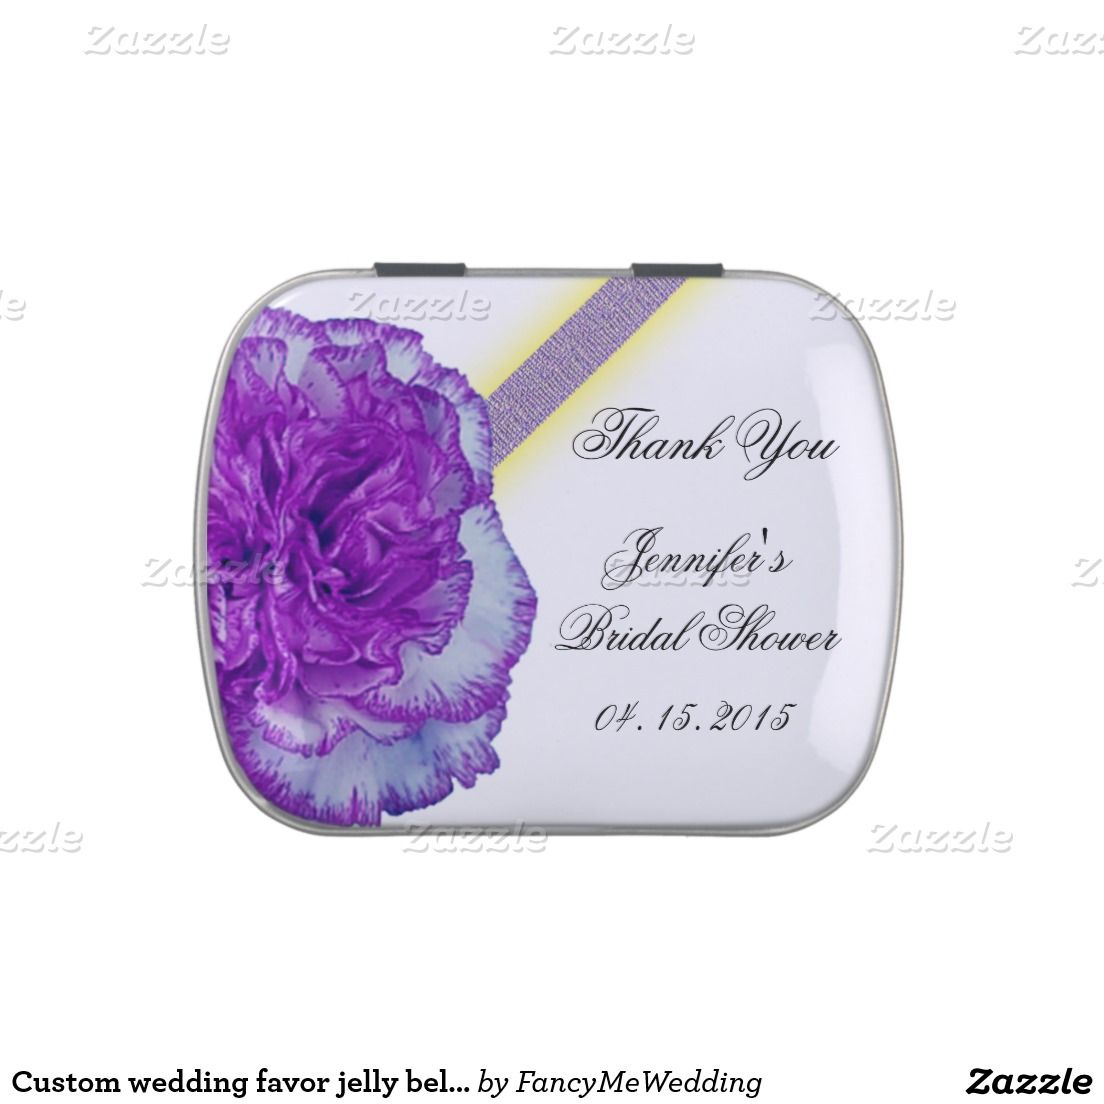 Custom wedding favor jelly belly jelly belly tins | Bridal Shower ...